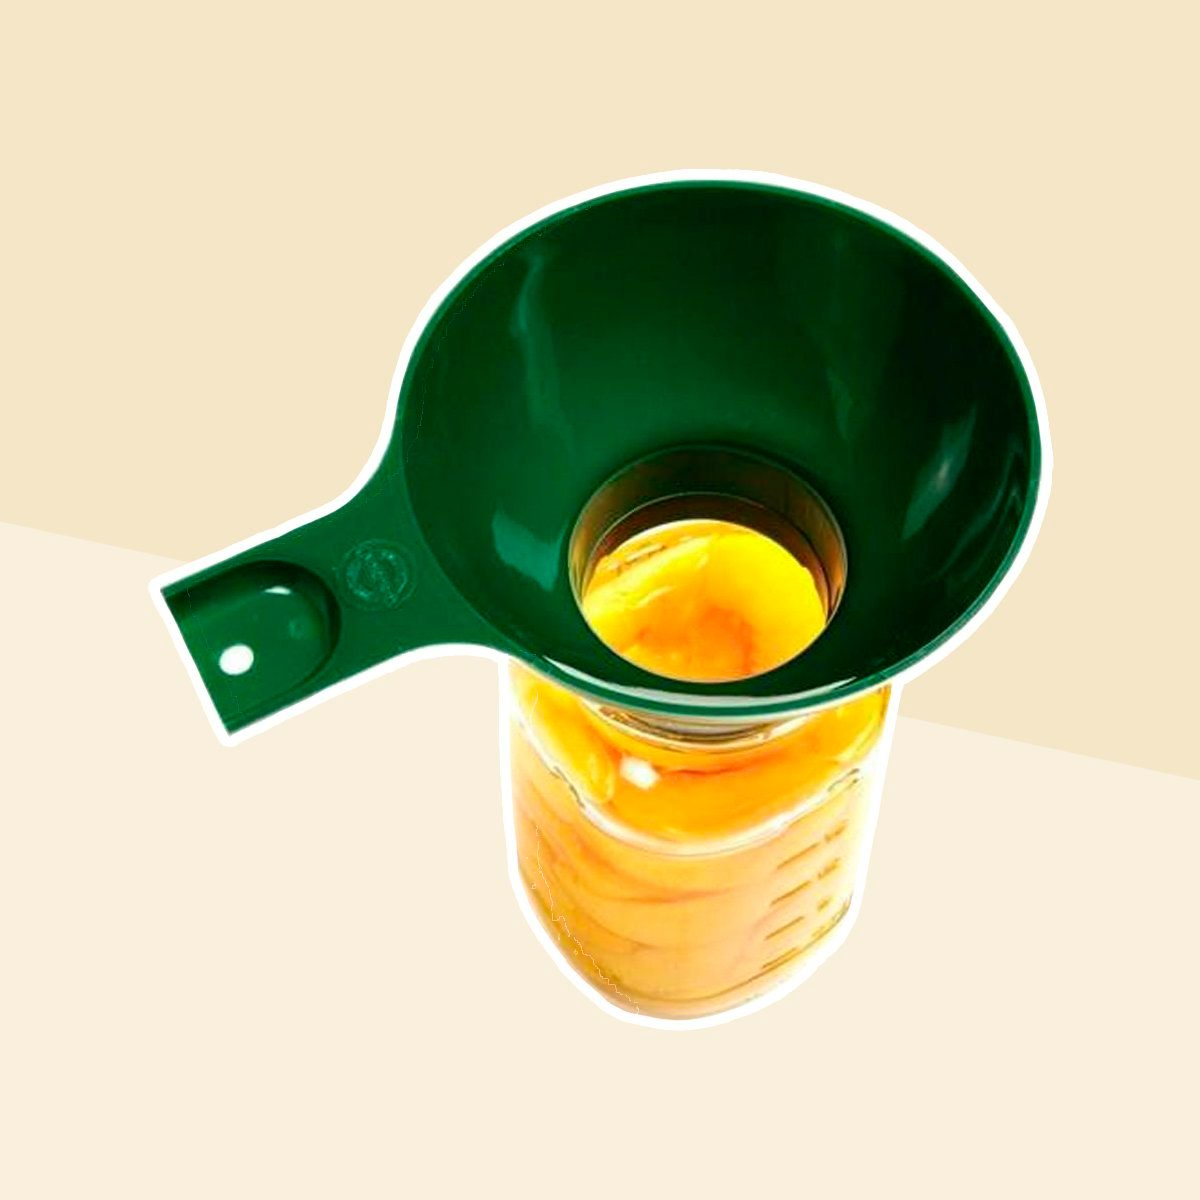 Norpro 607 Plastic Canning Funnel